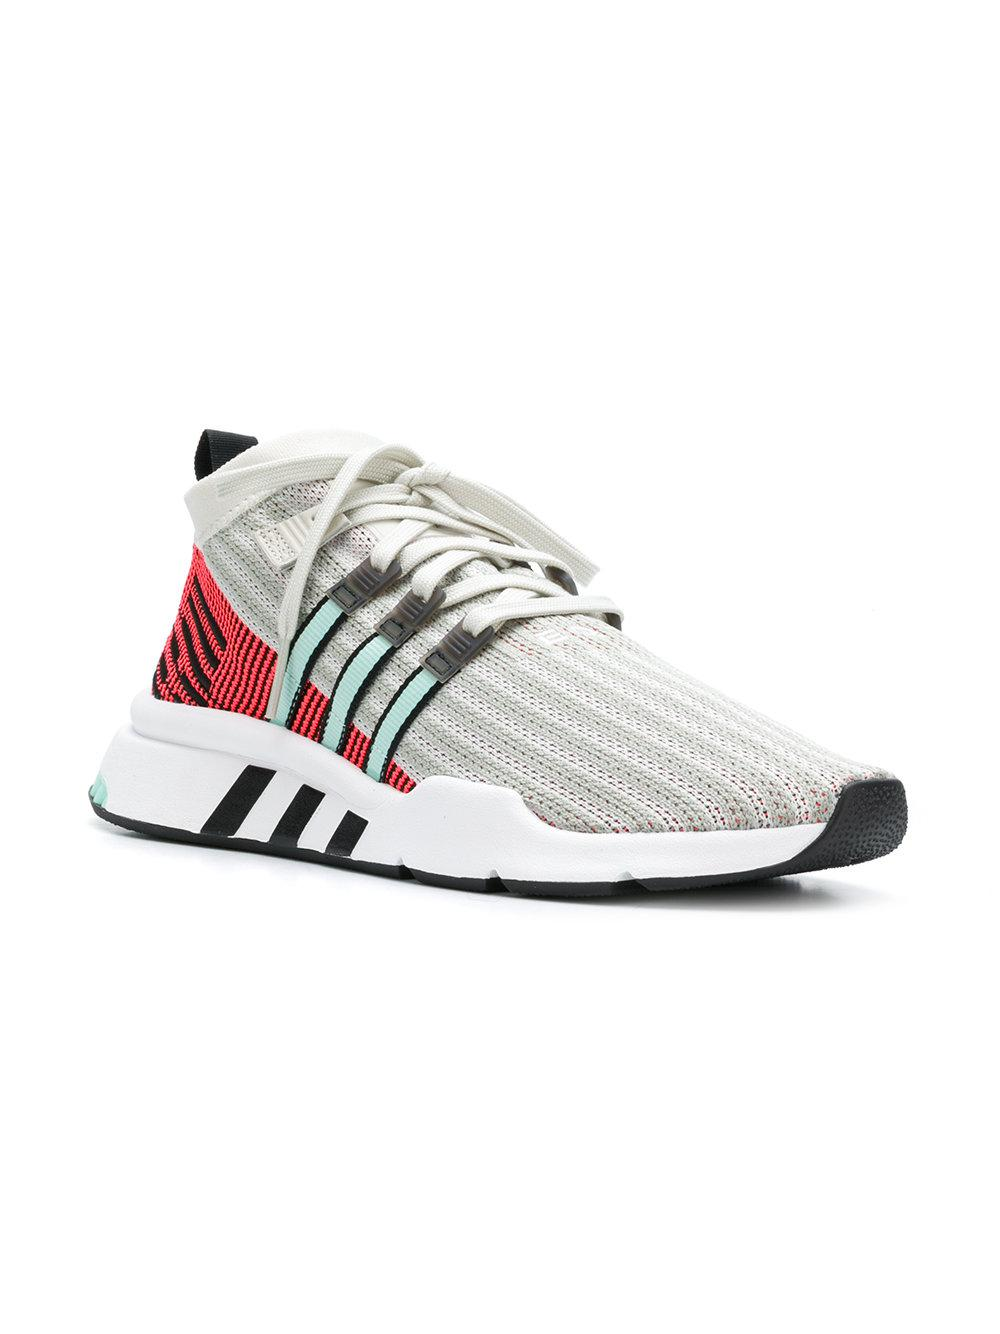 99dc66aab01658 Adidas - White Eqt Support Mid Adv Sneakers for Men - Lyst. View fullscreen